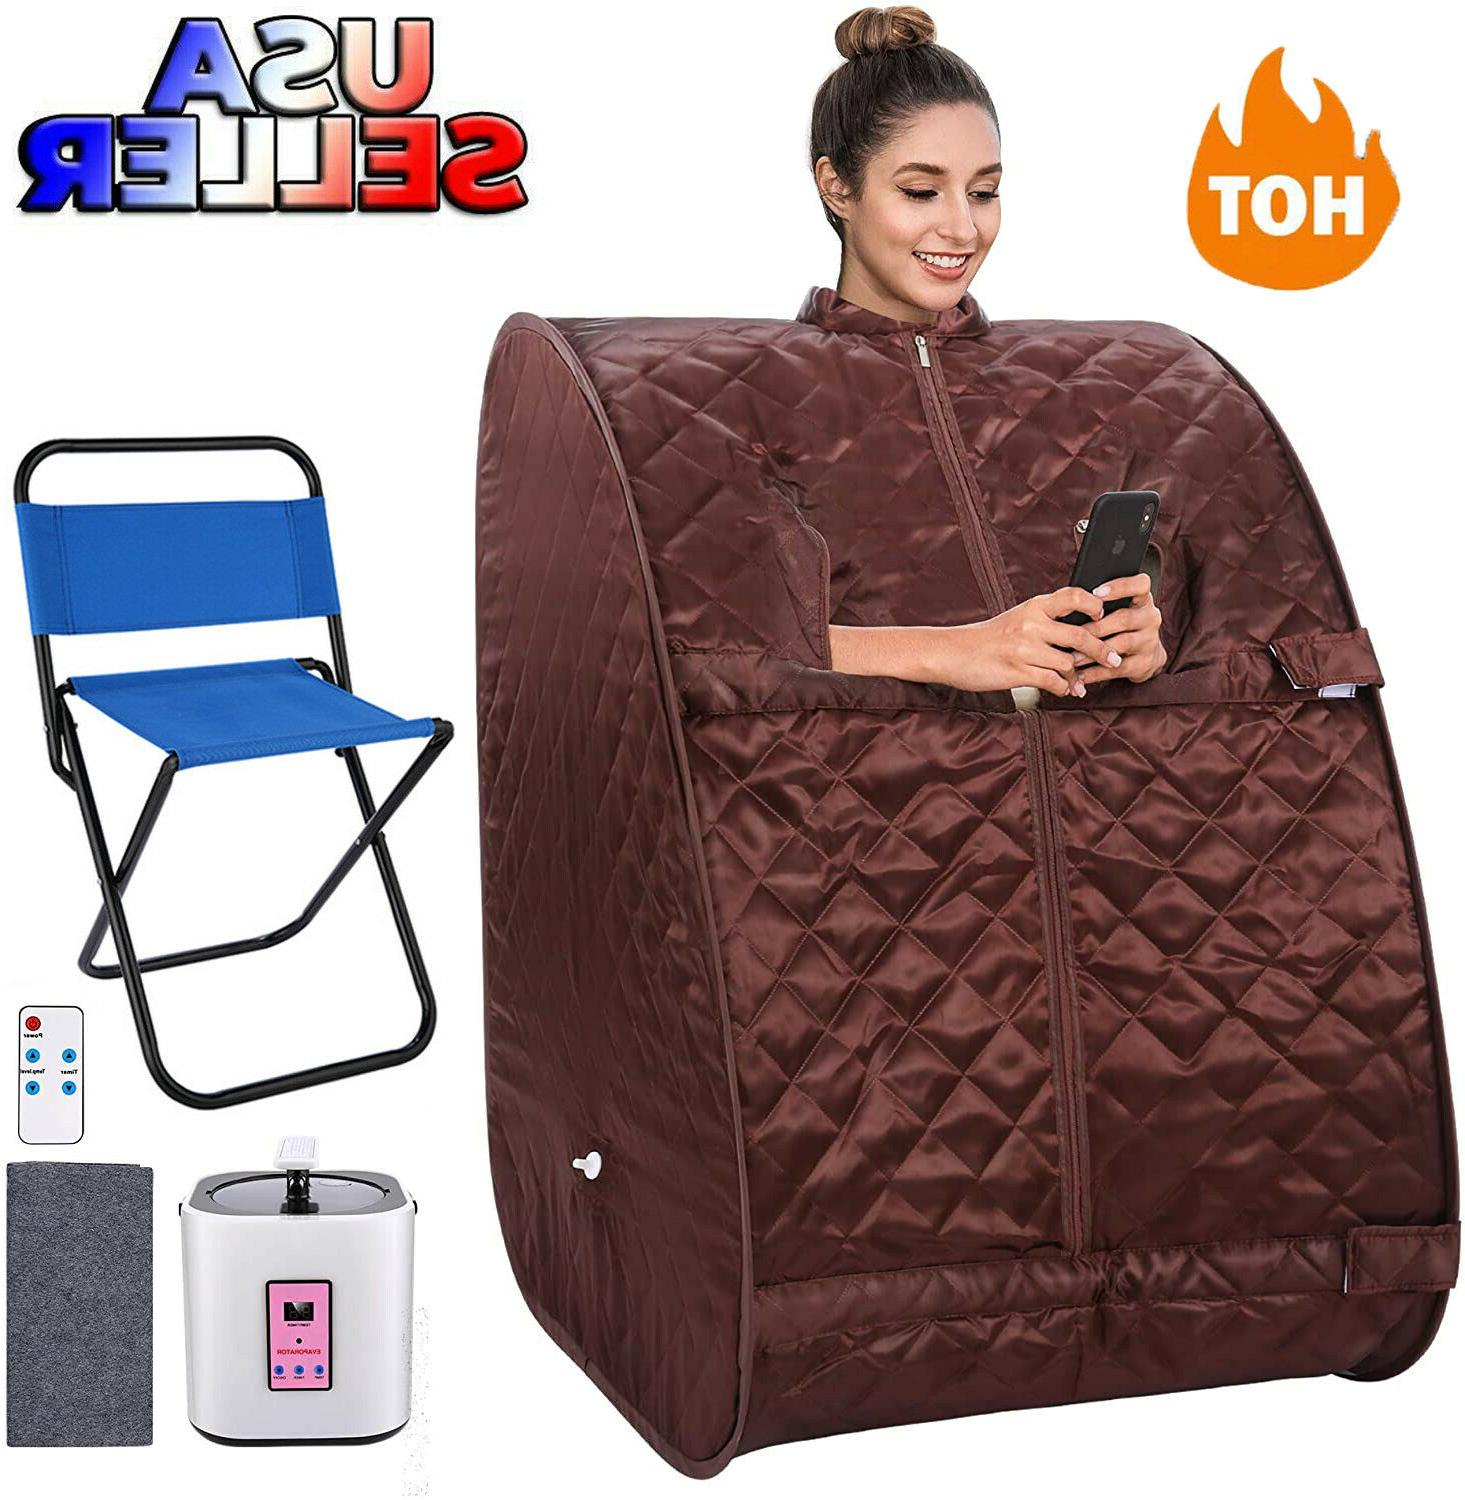 Personal Steam Sauna Spa for Detox Weightloss in Home Chair